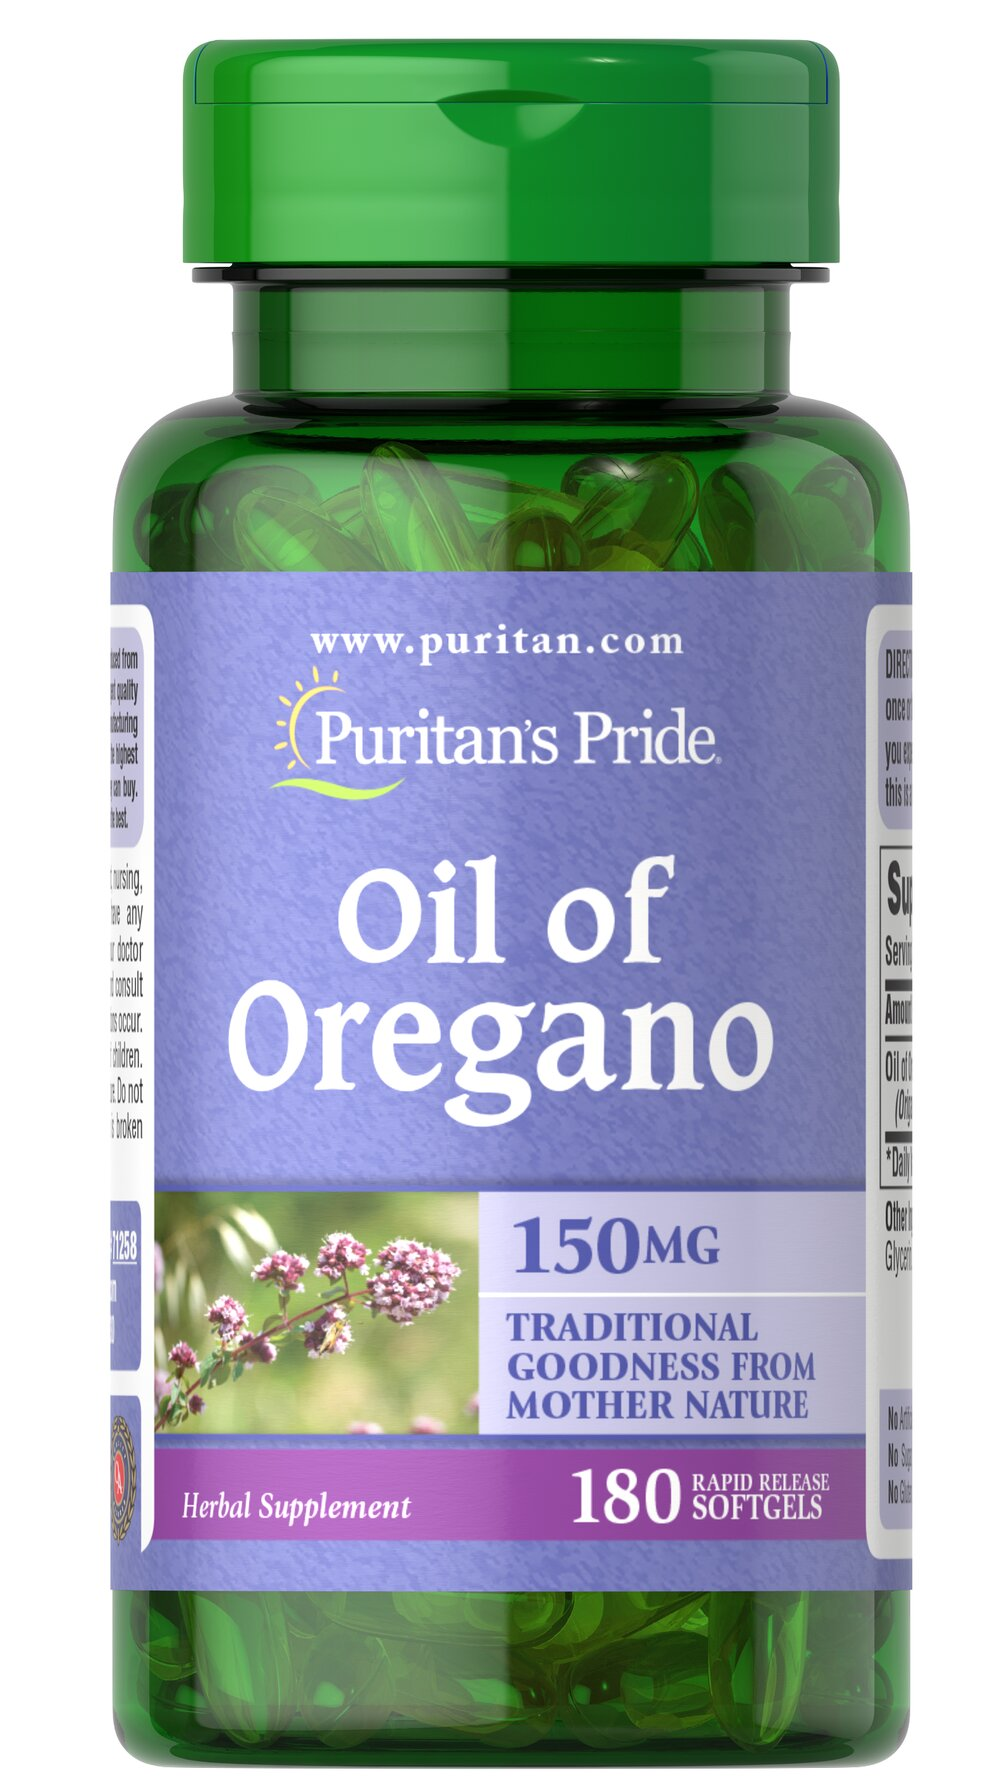 "Oil of Oregano Extract 1500 mg <p>Oil of Oregano equivalent to 1500 mg fresh oregano</p><p>Oil of Oregano has been held in high regard for its holistic qualities. It contains a number of valuable constituents and includes naturally occurring antioxidant phytochemicals.** Our high-quality softgels make it easy to obtain ""traditional goodness from Mother Nature."" </p>   180 Softgels 1500 mg $15.99"